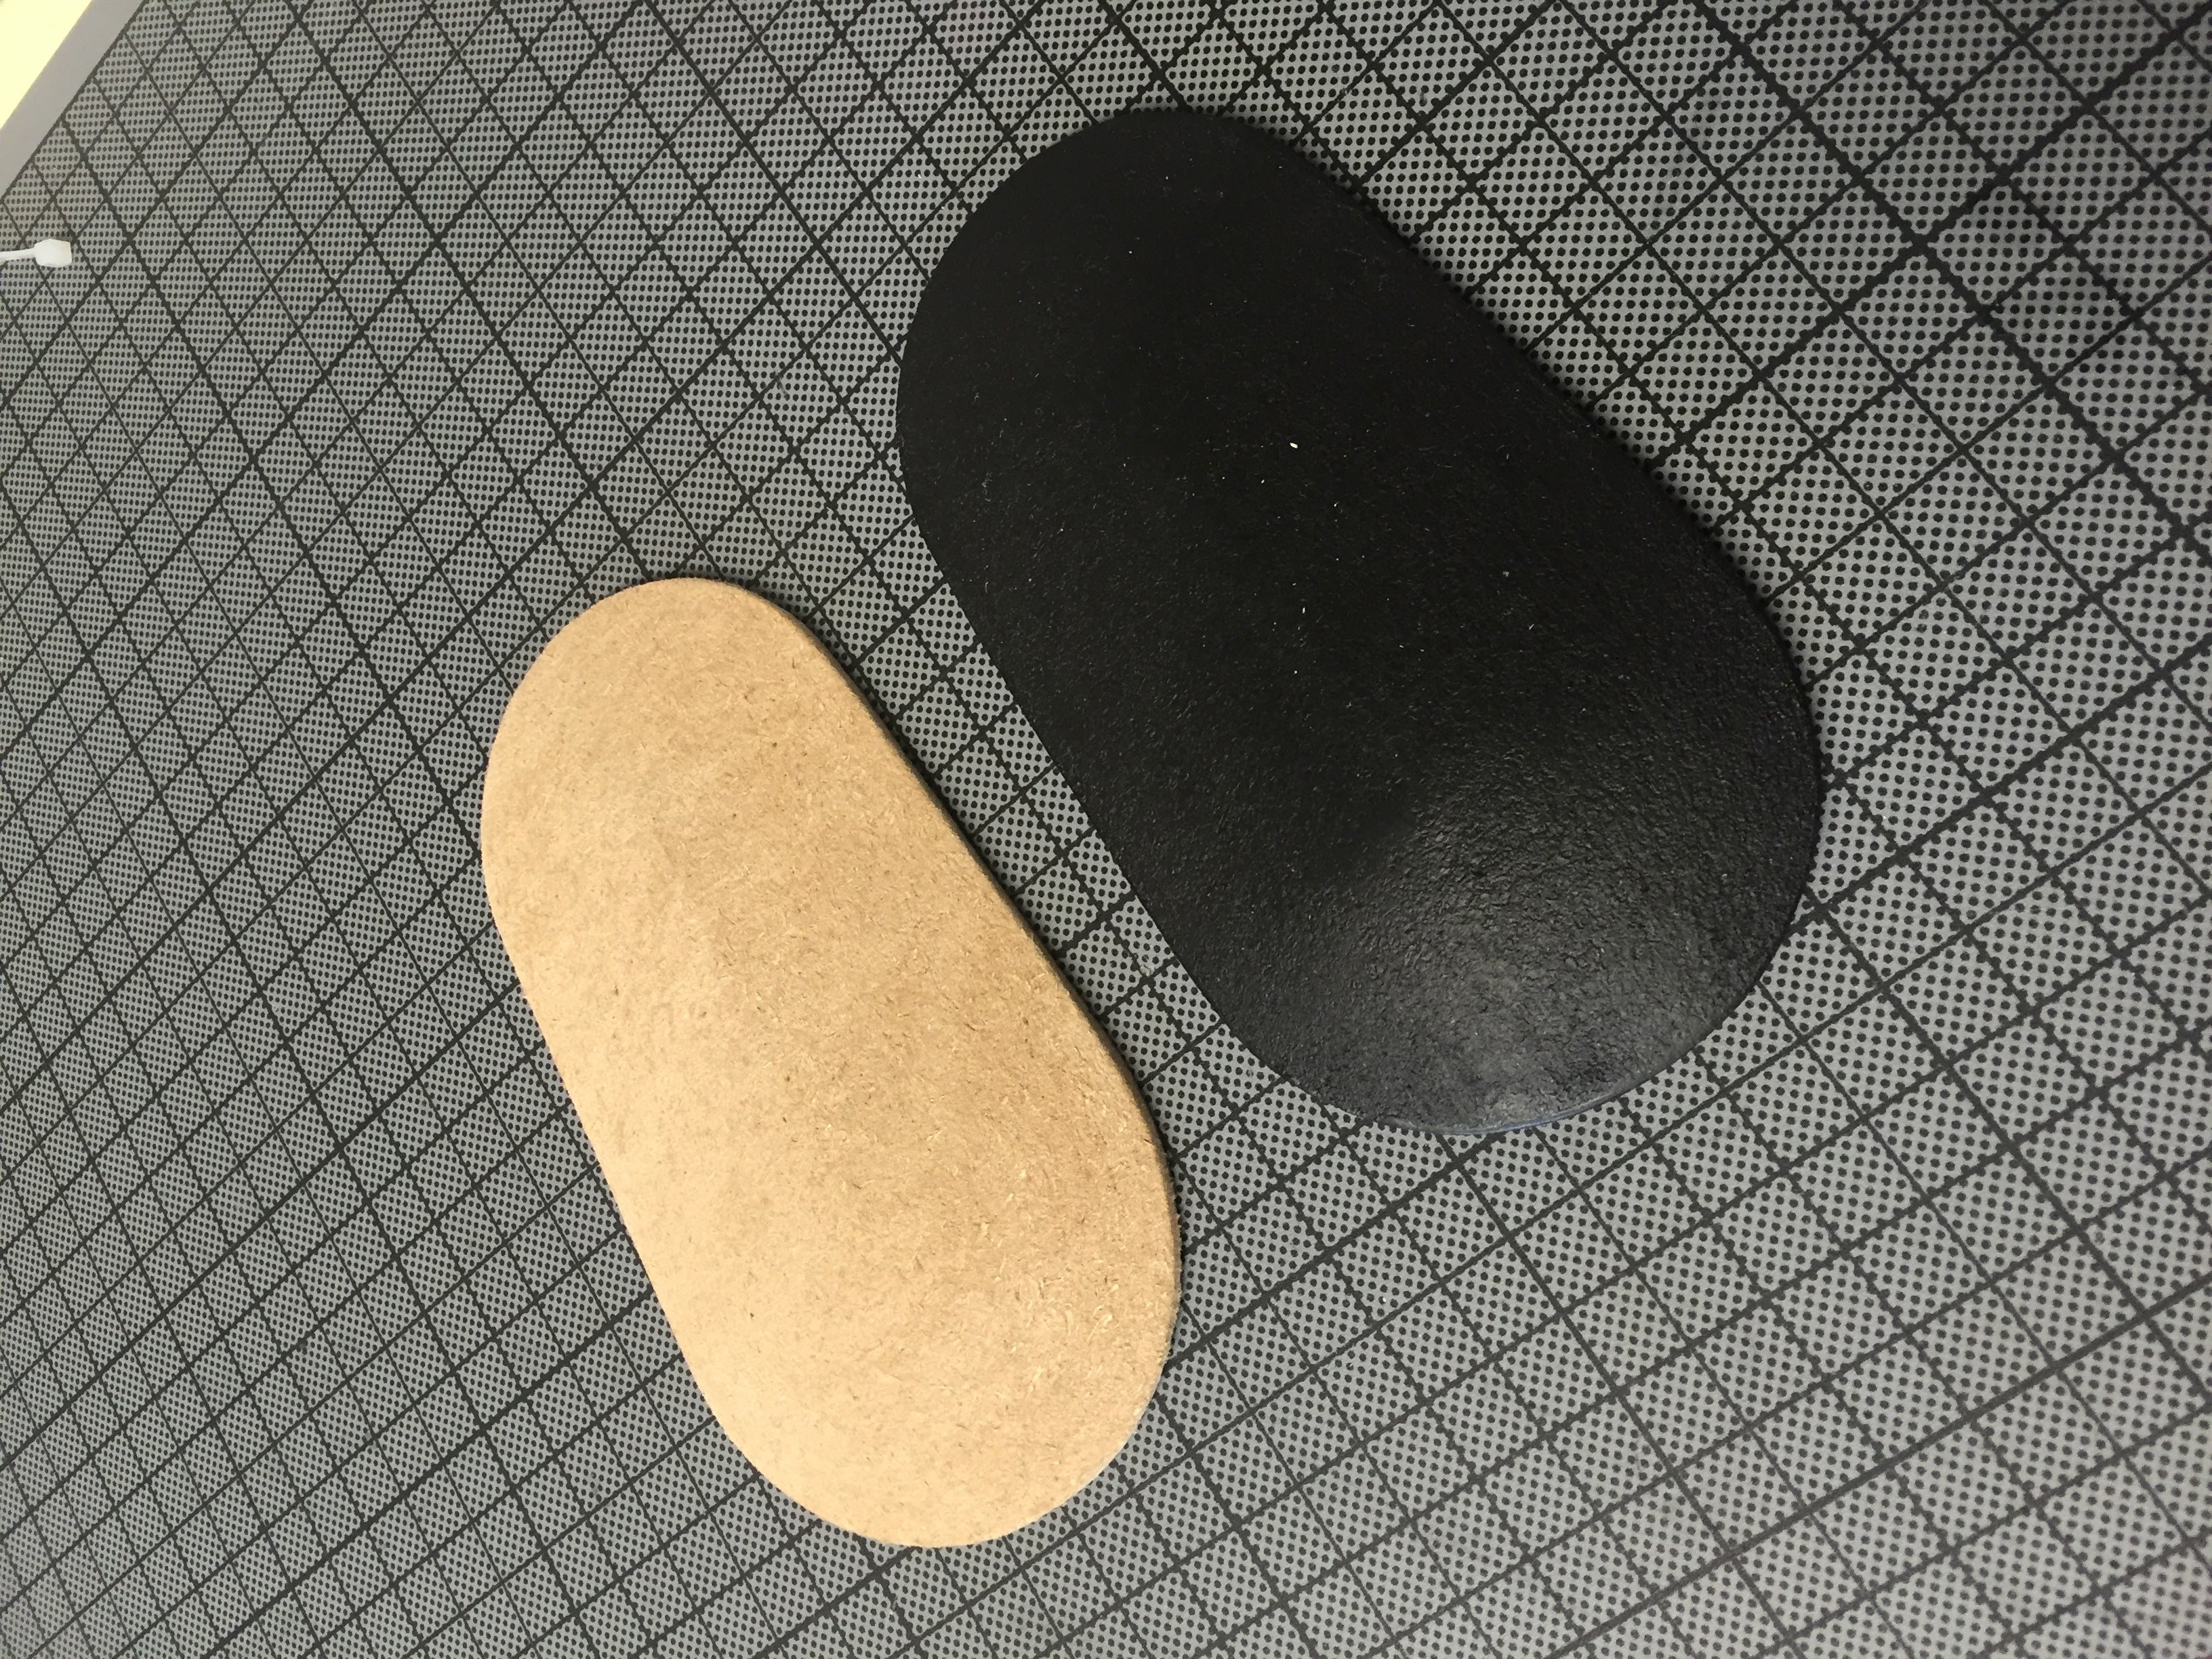 Mc5h0m9ierusjm7re3pw